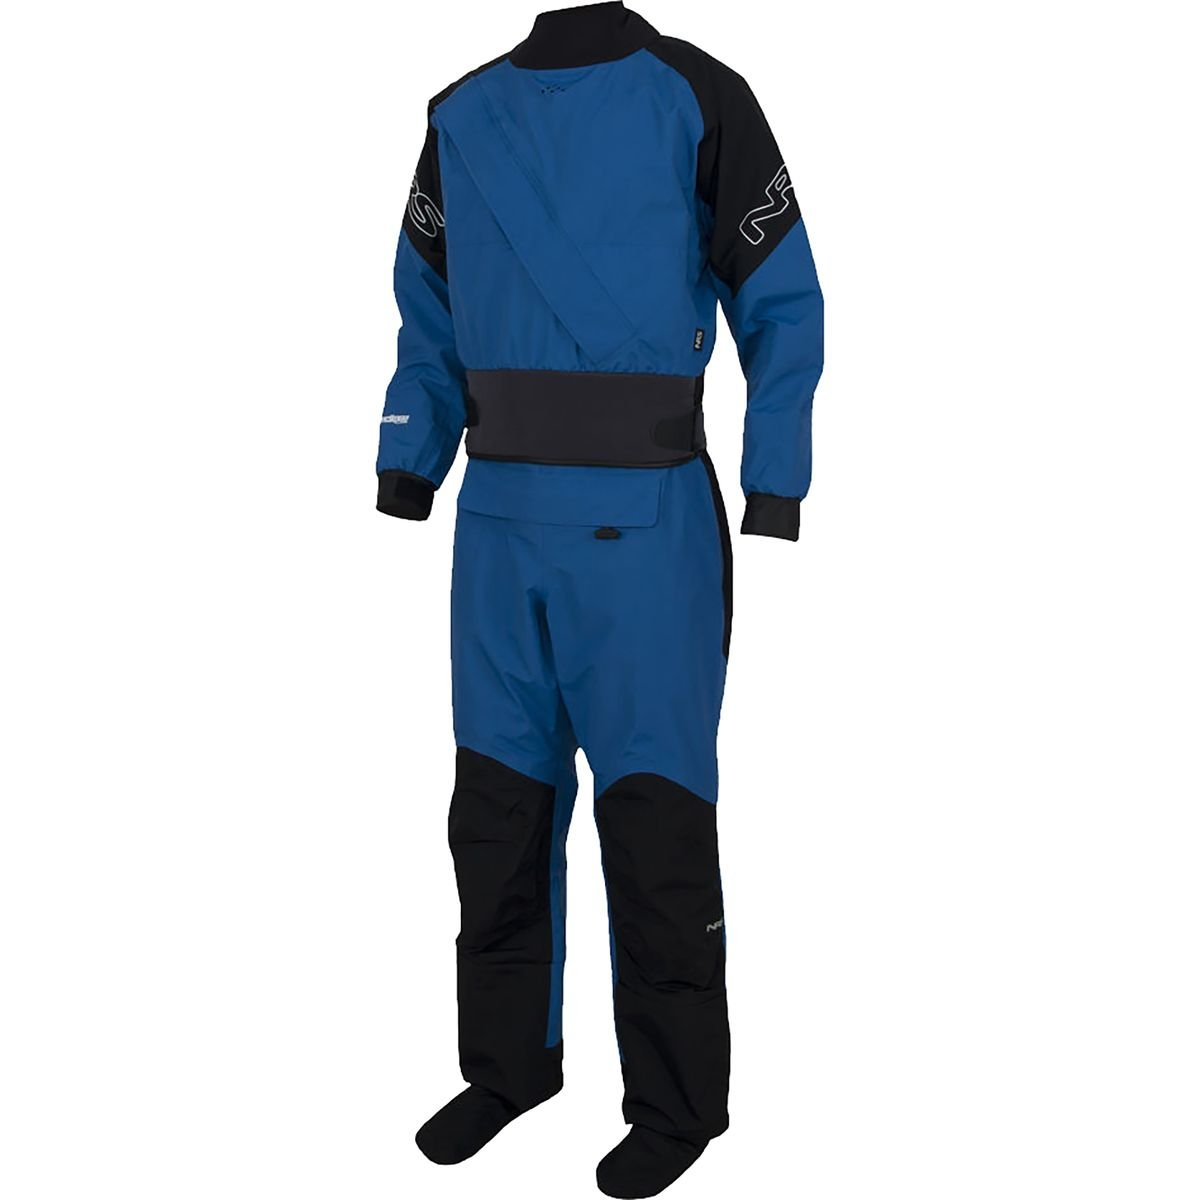 NRS Crux Drysuit - Men's Pants & Shorts MD Blue/Black